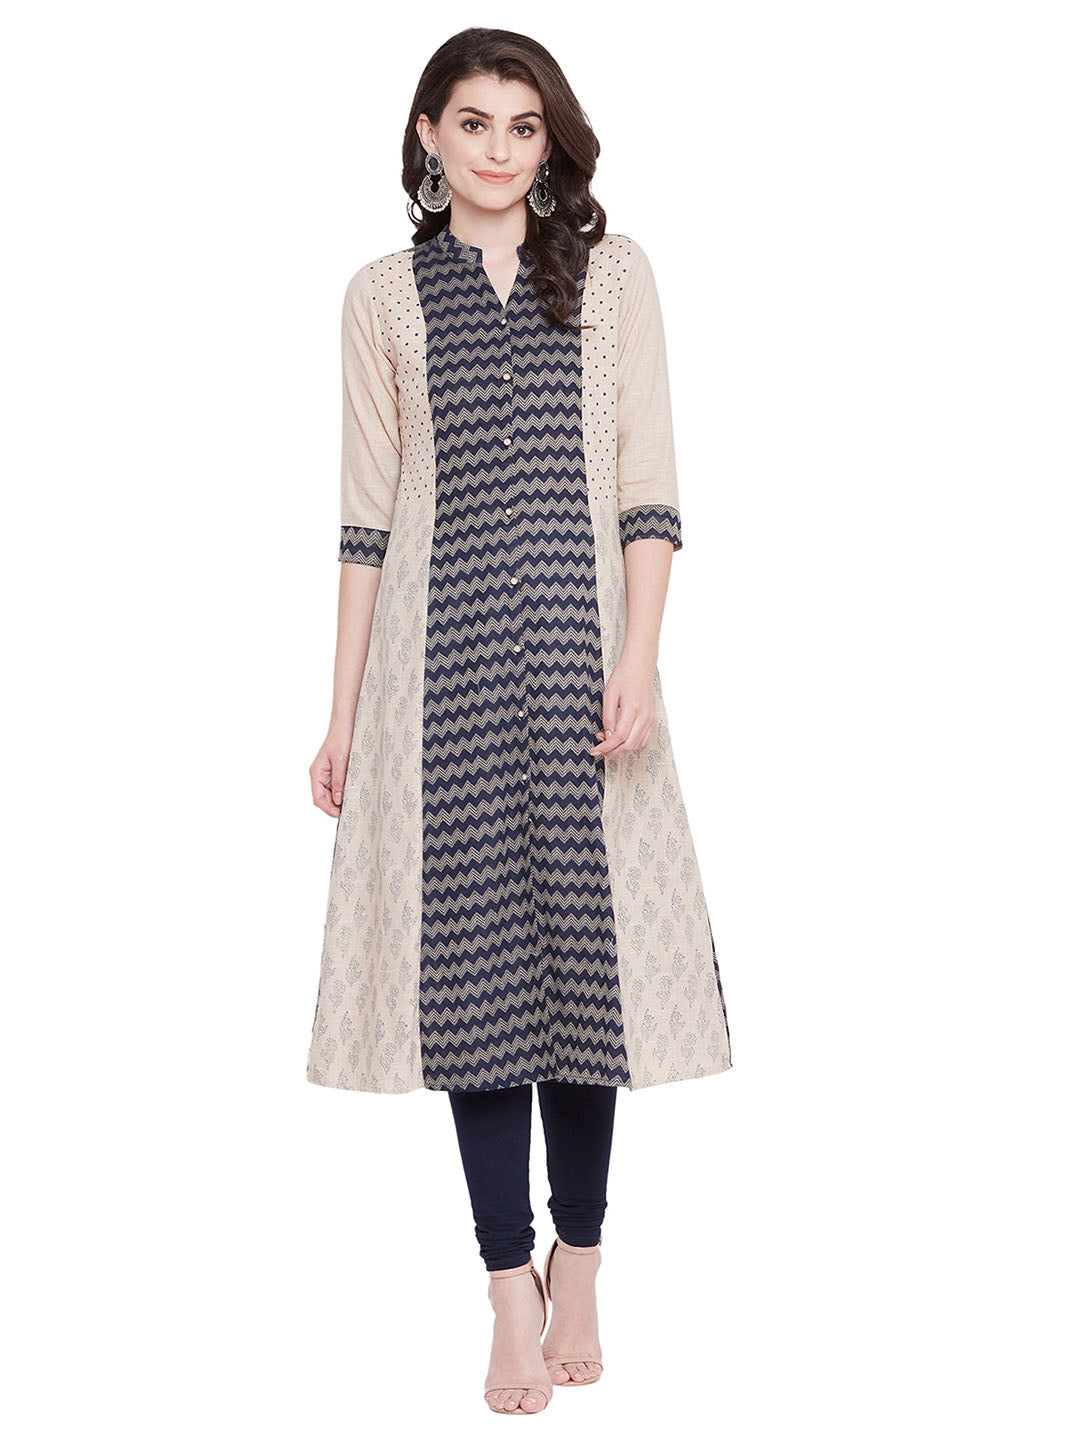 MEESAN Blue-Beige Handloom Block Printed Kurti for Women